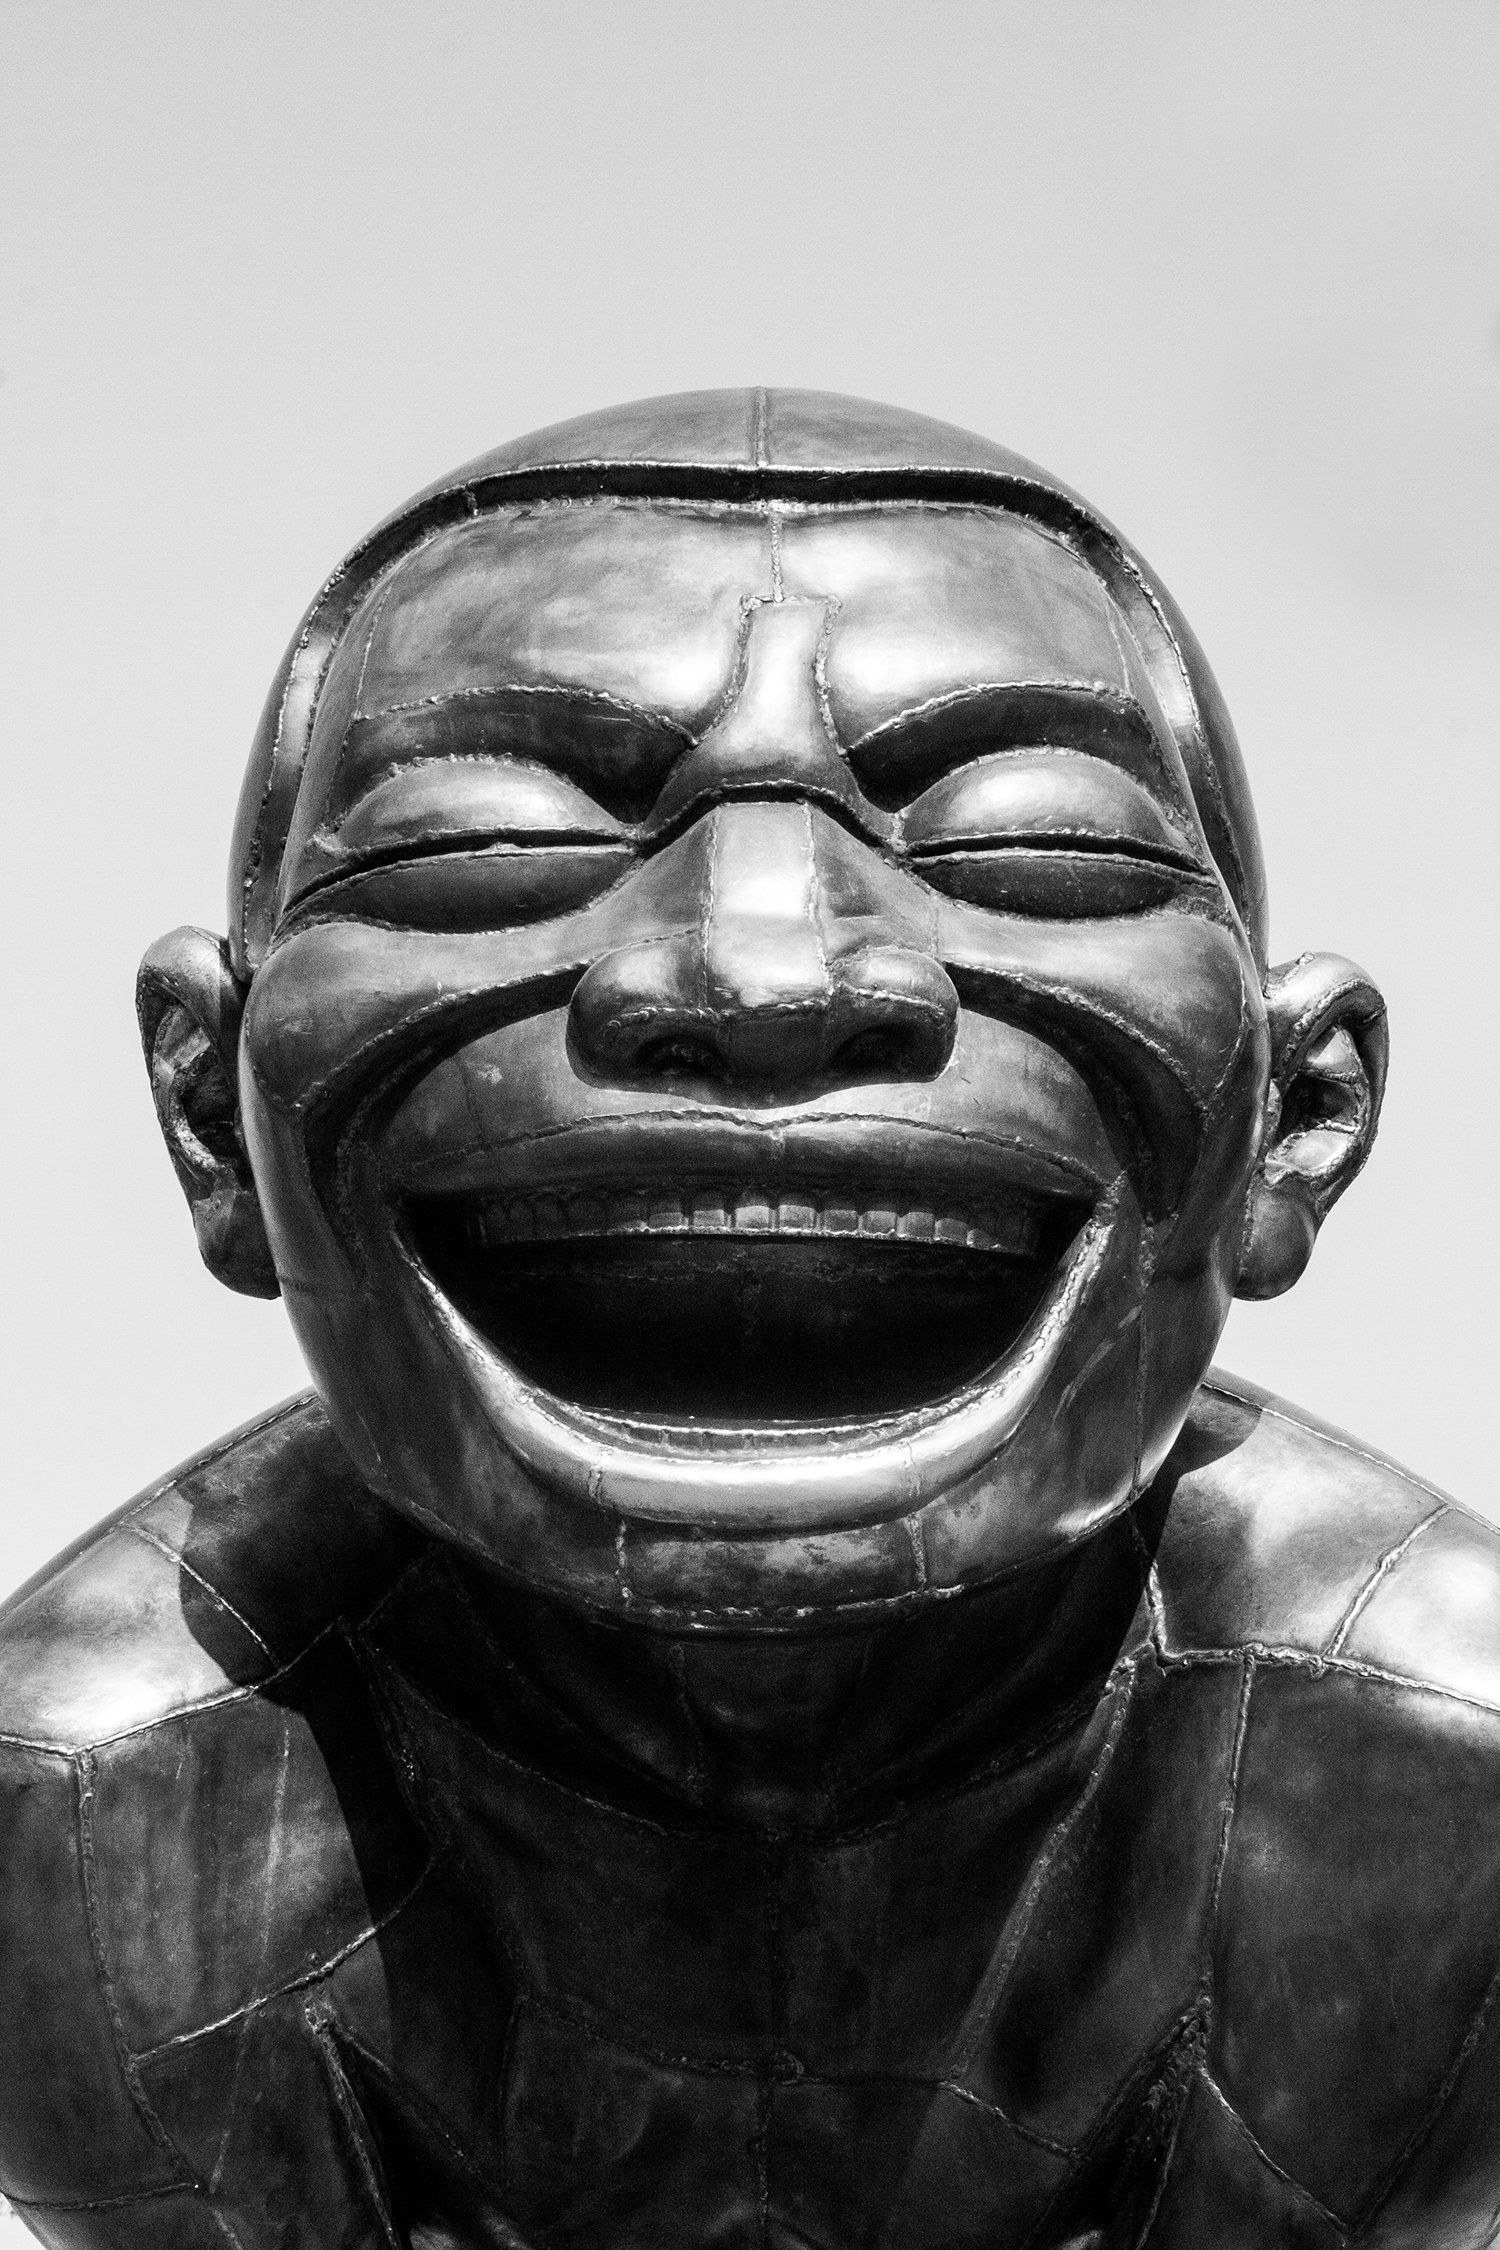 Photograph Black and White Bronze Sculpture of Laughing